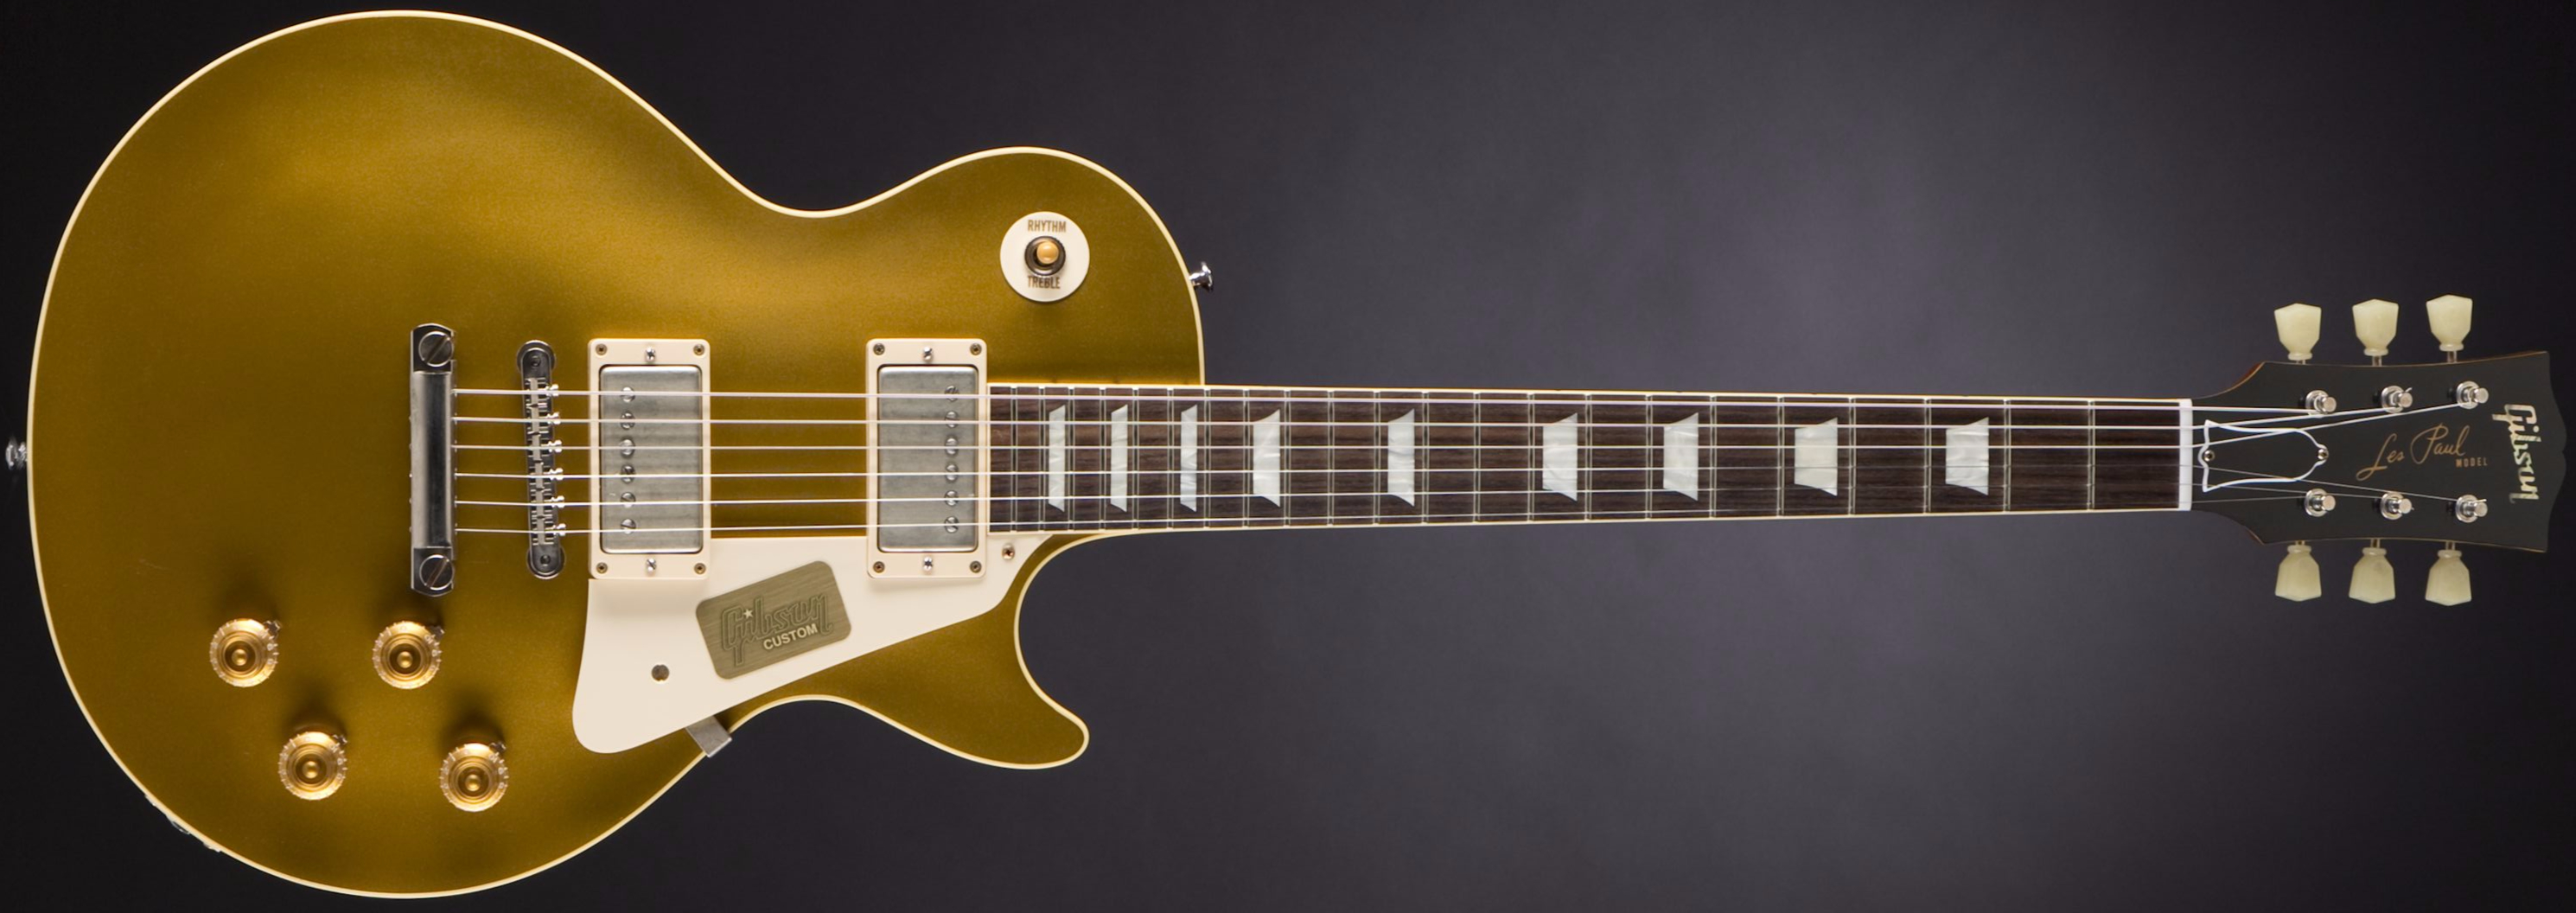 GIBSON Standard Historic 1957 Les Paul Standard Goldtop #R760235